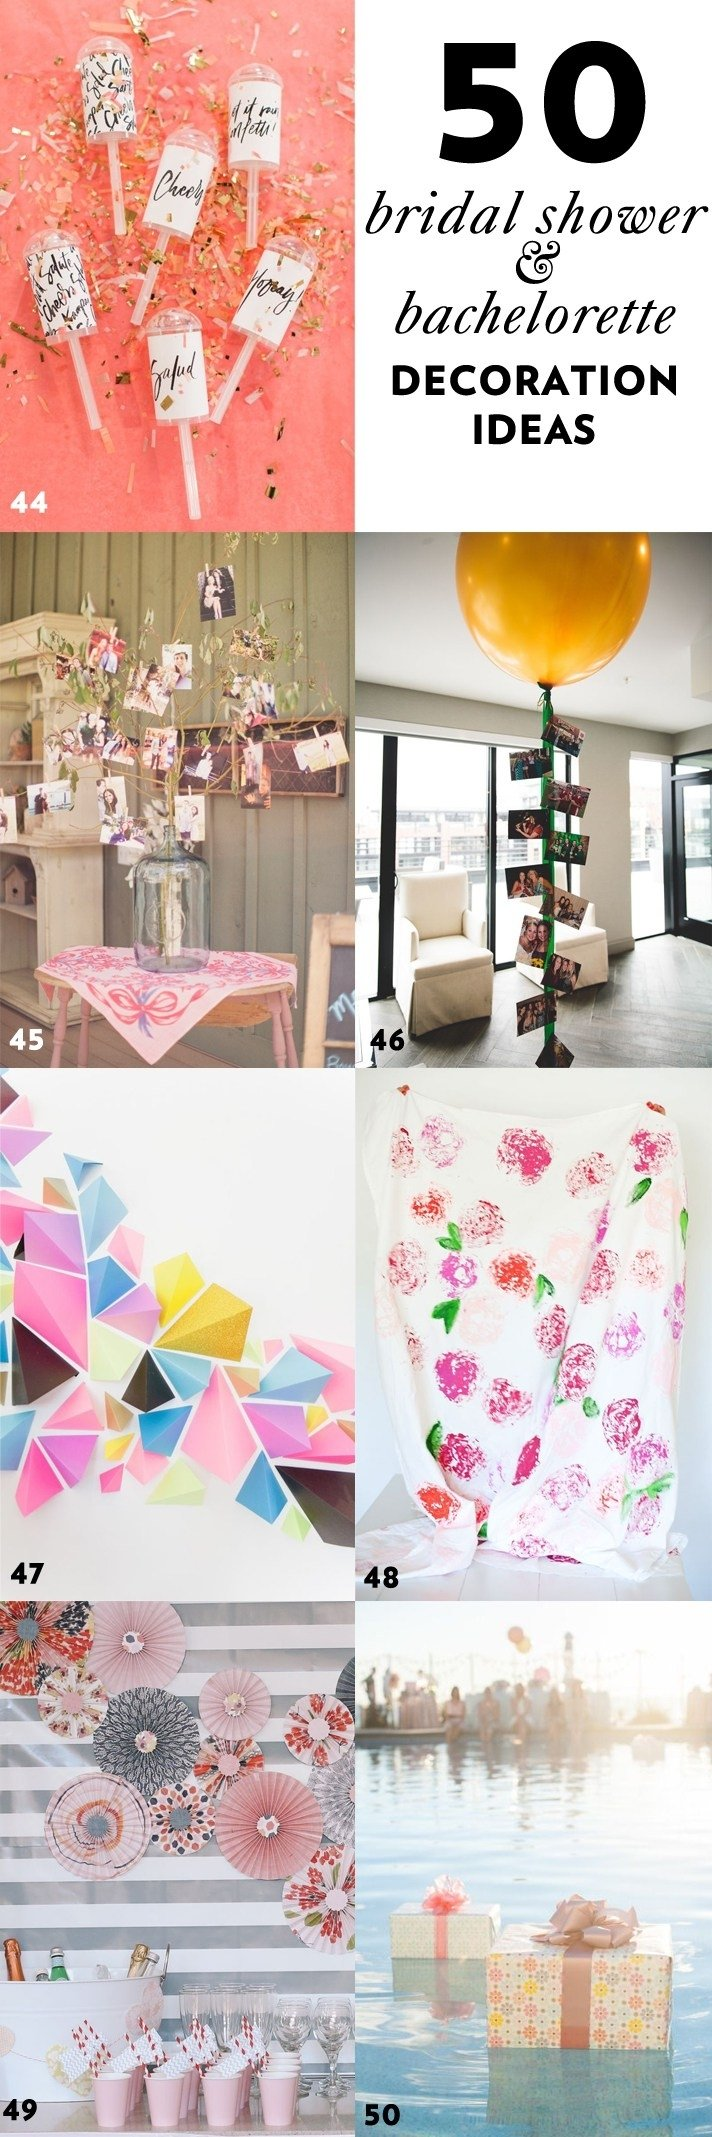 10 most recommended bridal shower decoration ideas diy 50 simple and stylish diy bridal shower bachelorette